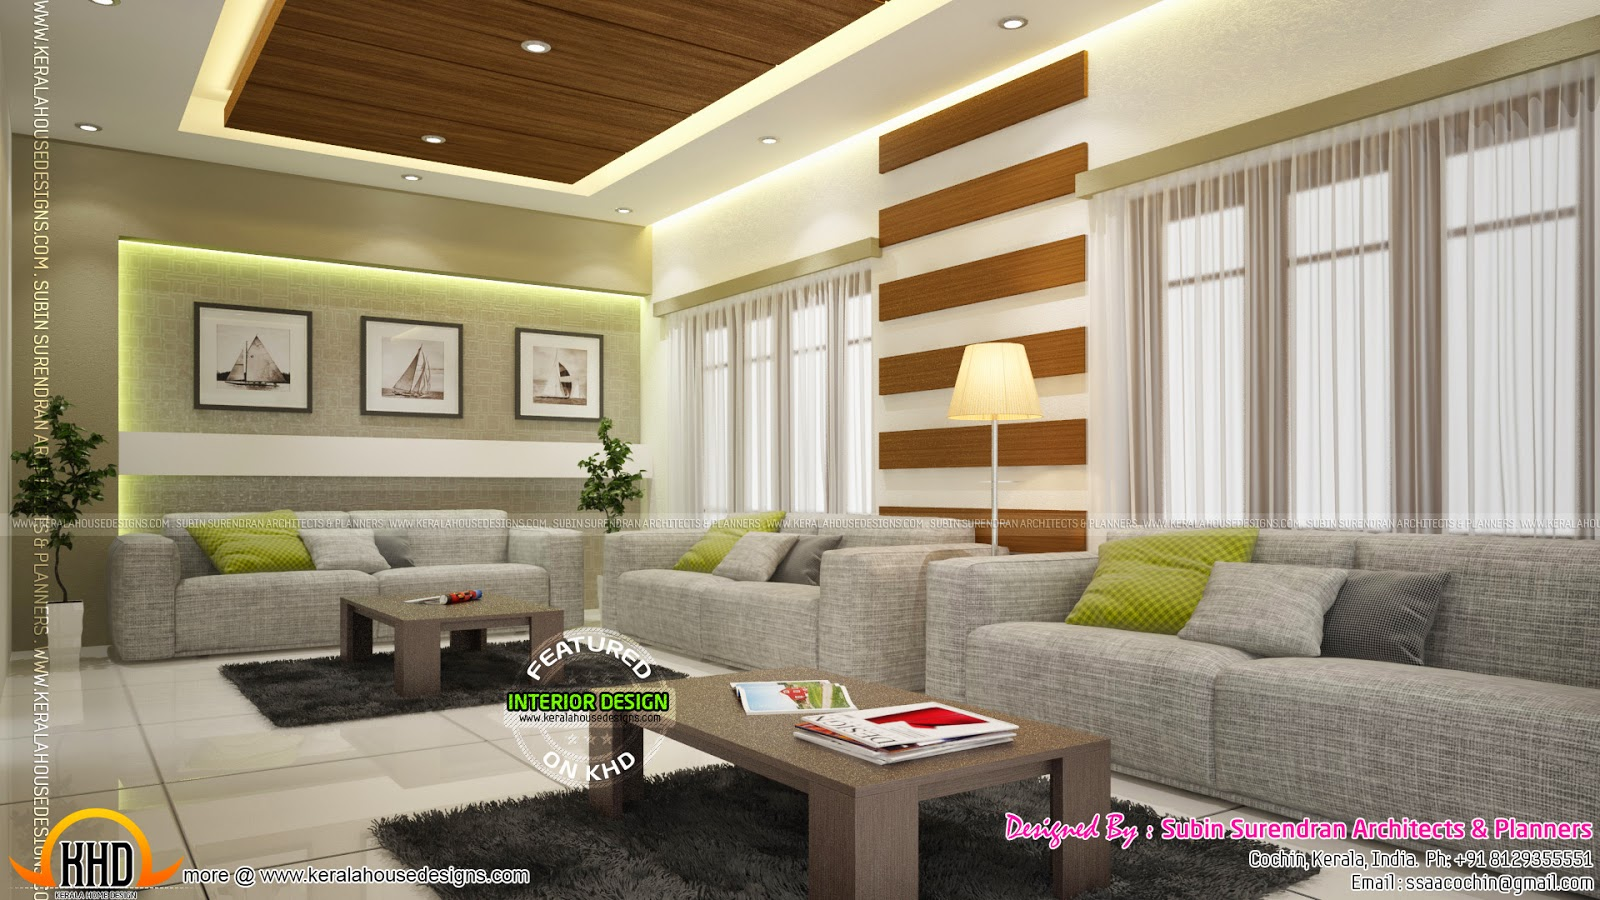 Beautiful home interior designs kerala home design and floor plans - Beautiful living rooms ...